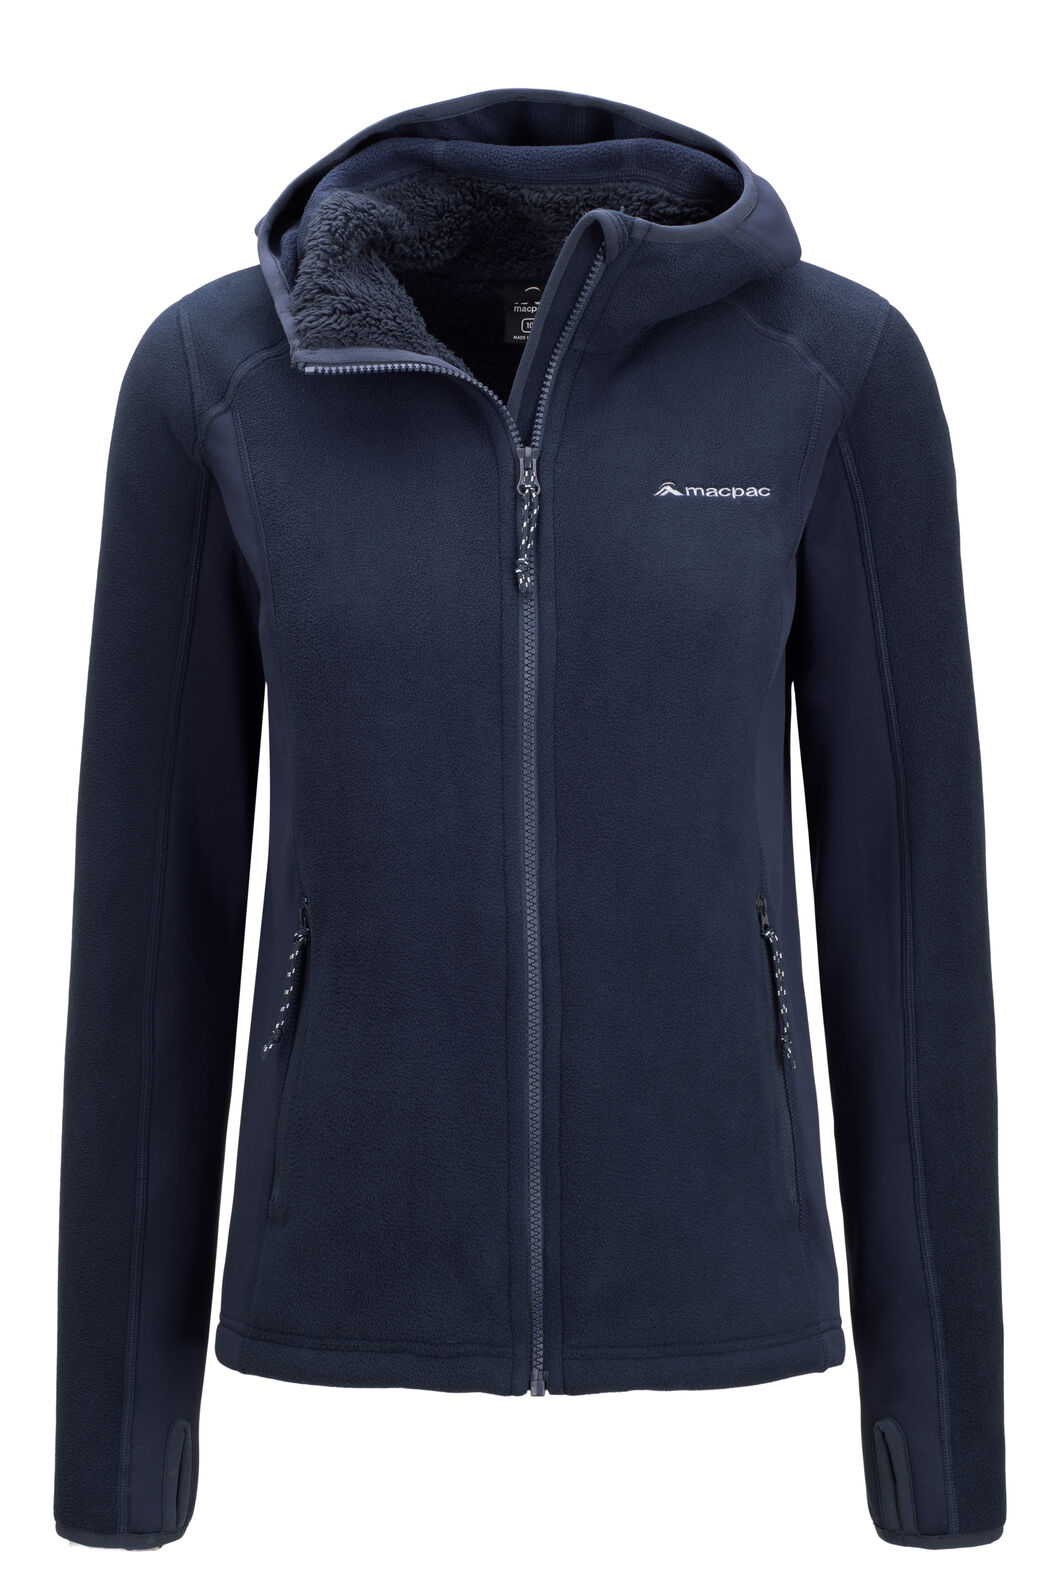 Macpac Women's Mountain Hooded Jacket, Total Eclipse, hi-res